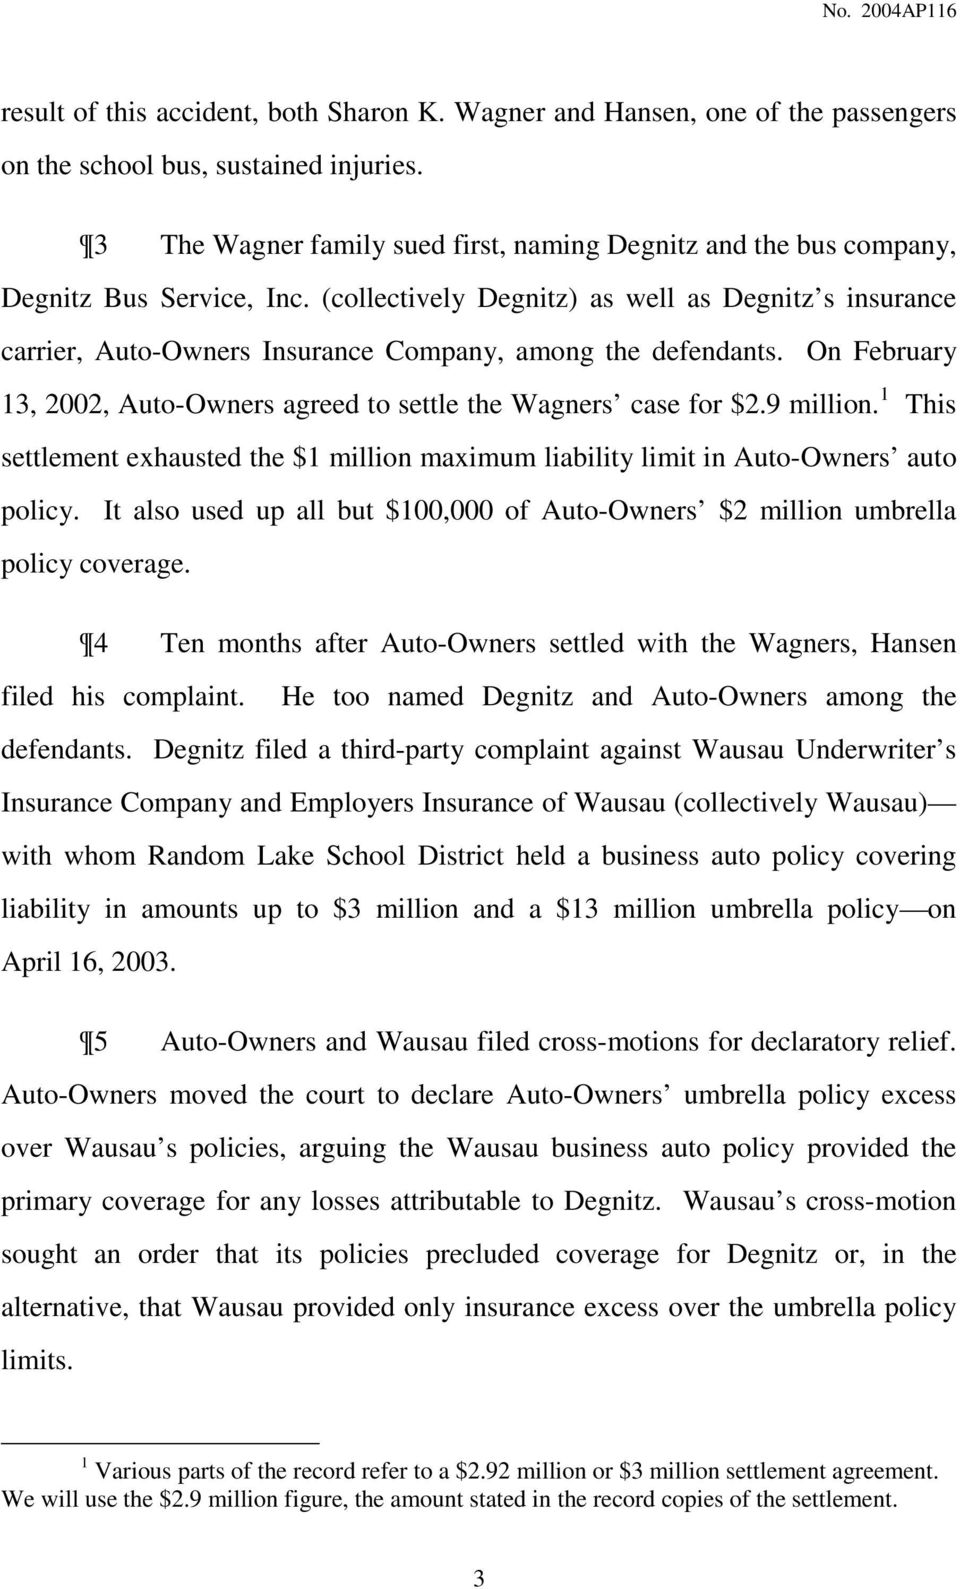 (collectively Degnitz) as well as Degnitz s insurance carrier, Auto-Owners Insurance Company, among the defendants. On February 13, 2002, Auto-Owners agreed to settle the Wagners case for $2.